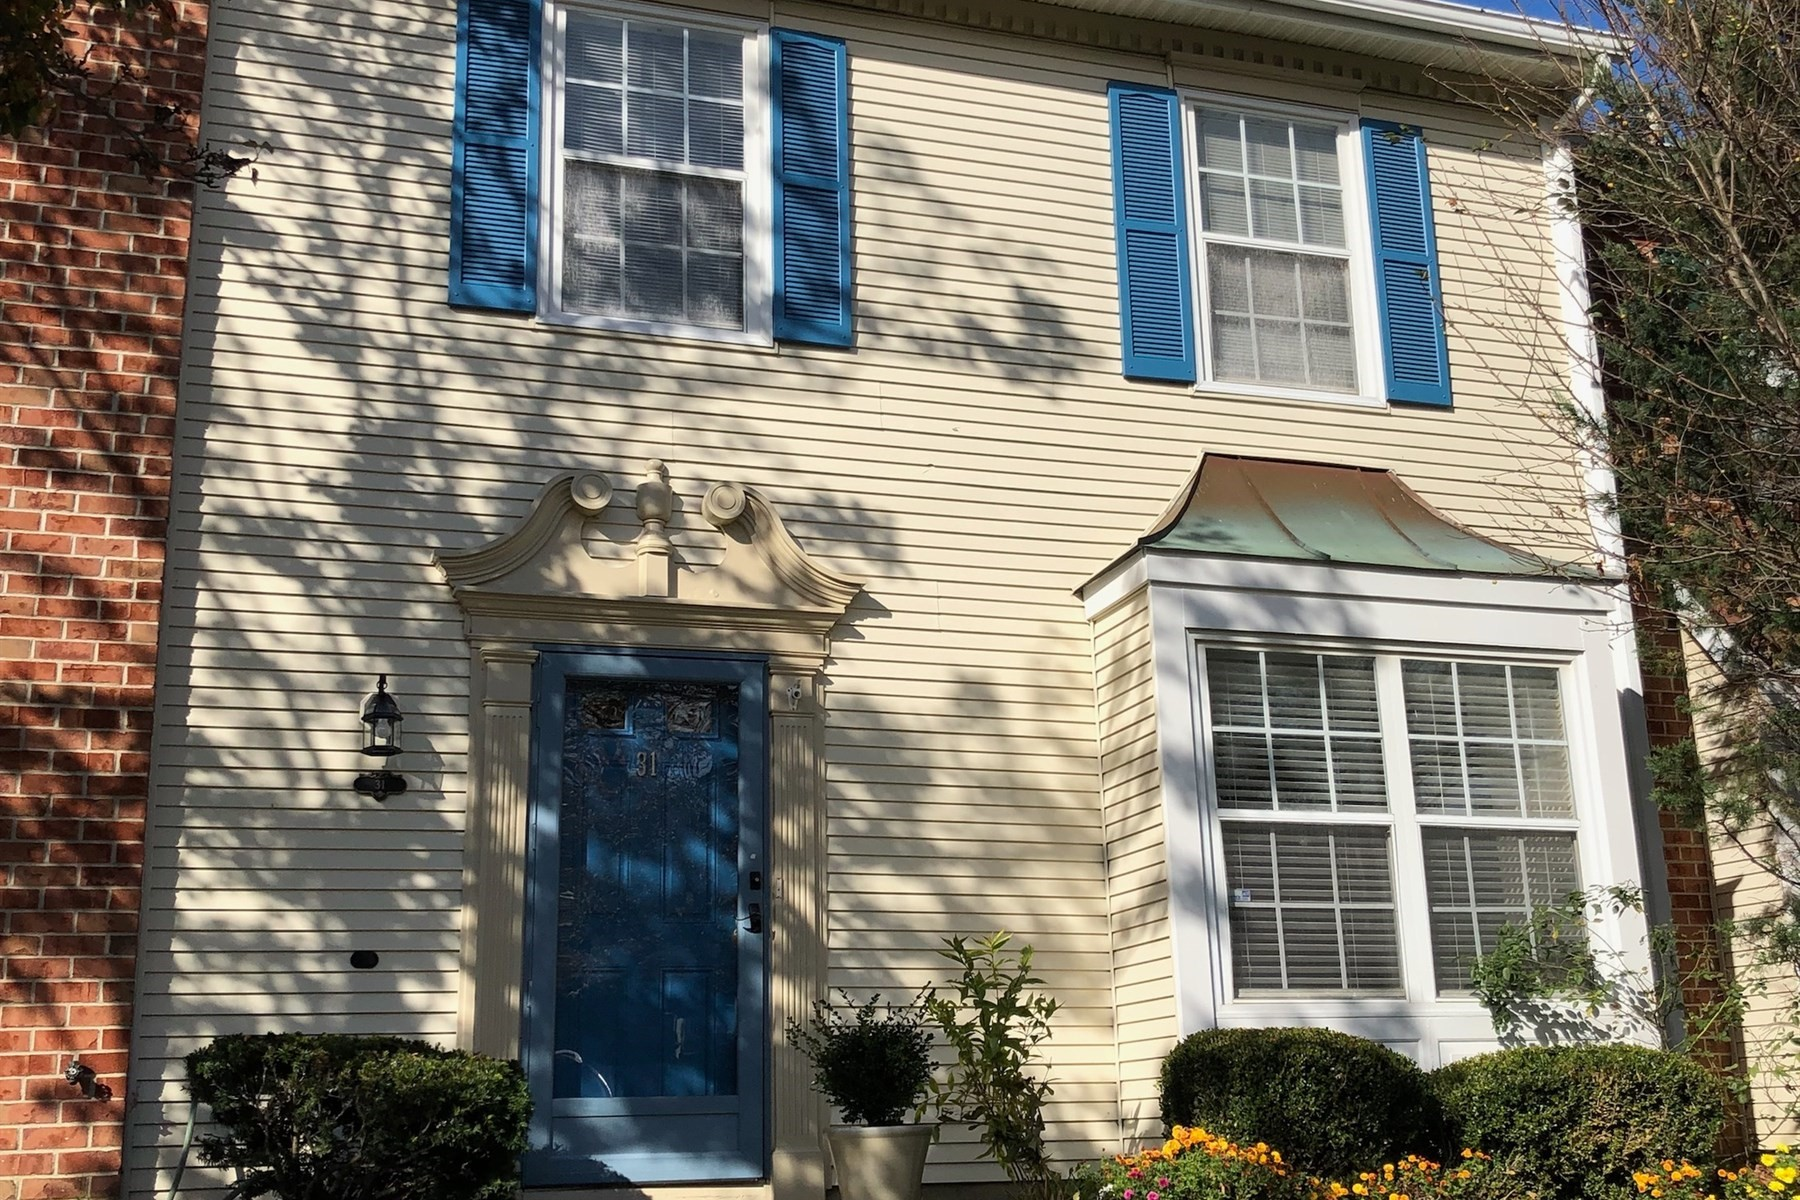 Single Family Home for Sale at 31 Sun Beau Court Tinton Falls, New Jersey 07724 United States